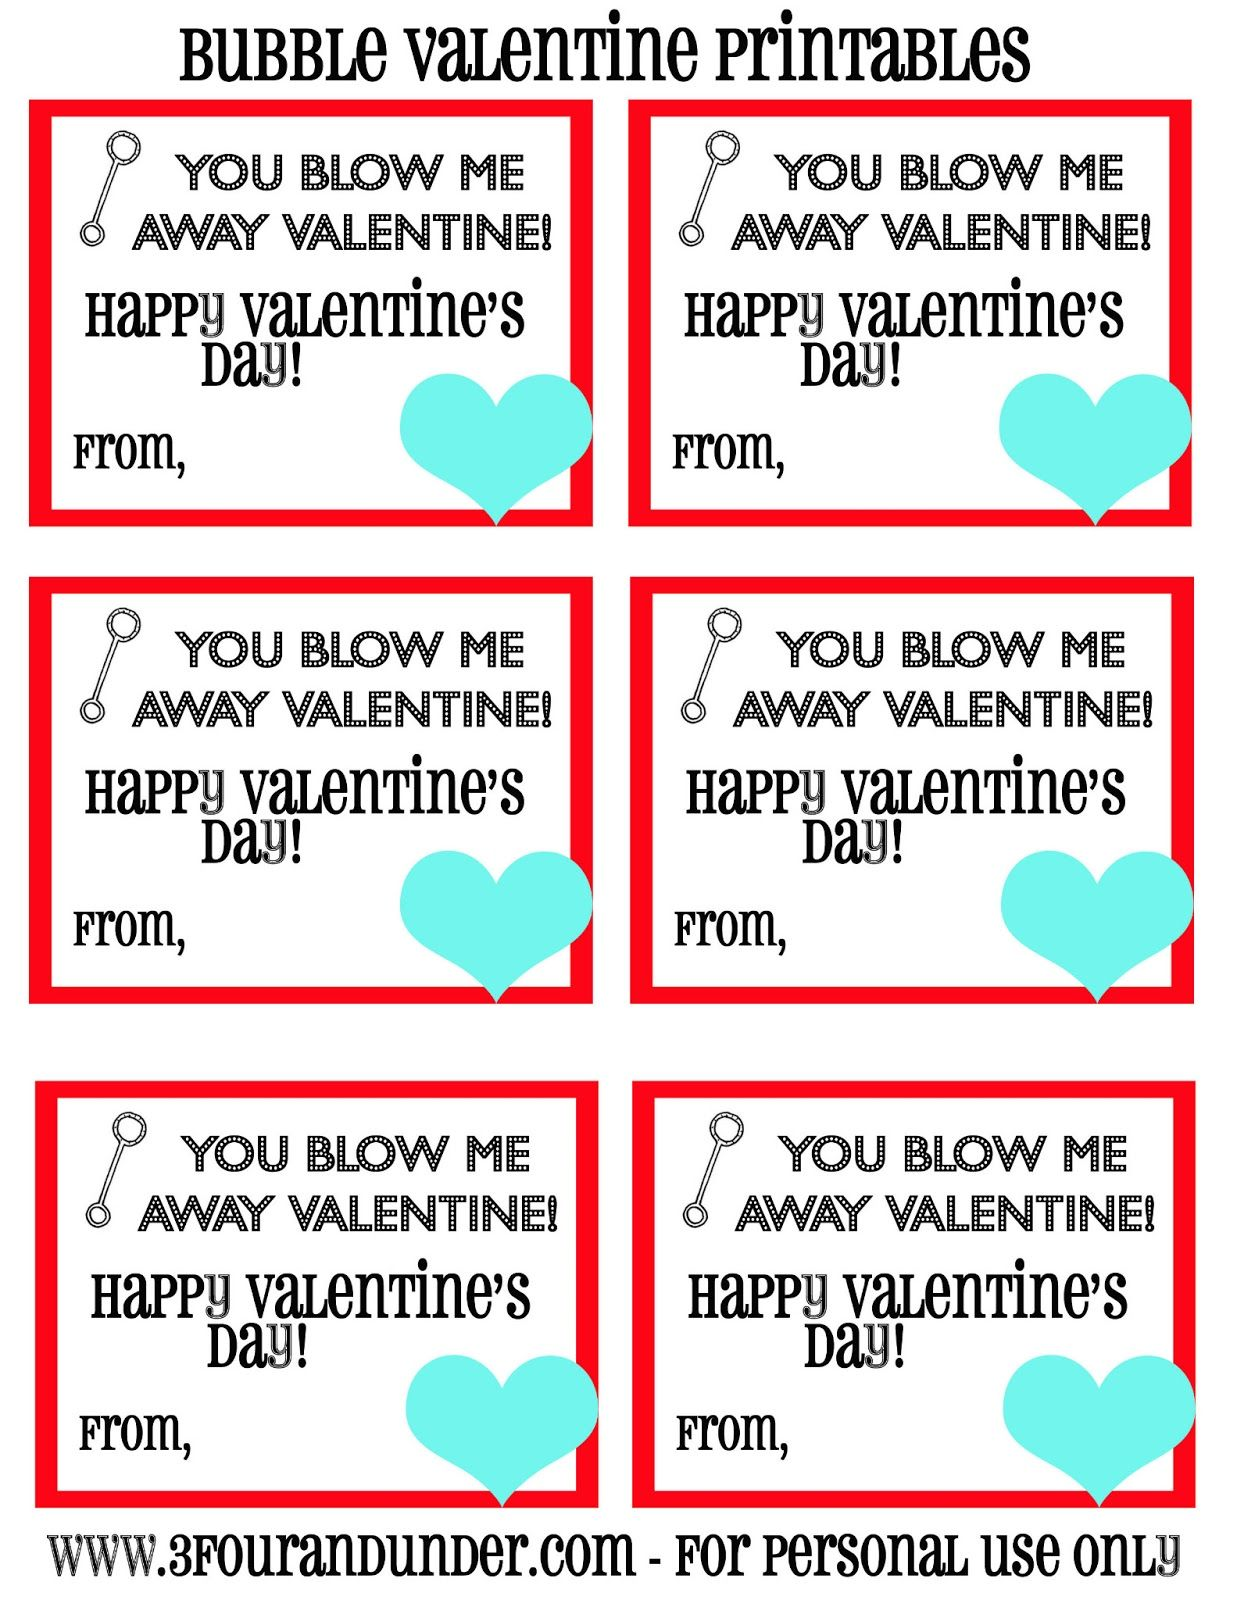 photo about You Blow Me Away Valentine Printable referred to as Pin by way of Nicole Papuga upon Valentines Working day Valentine working day delight in